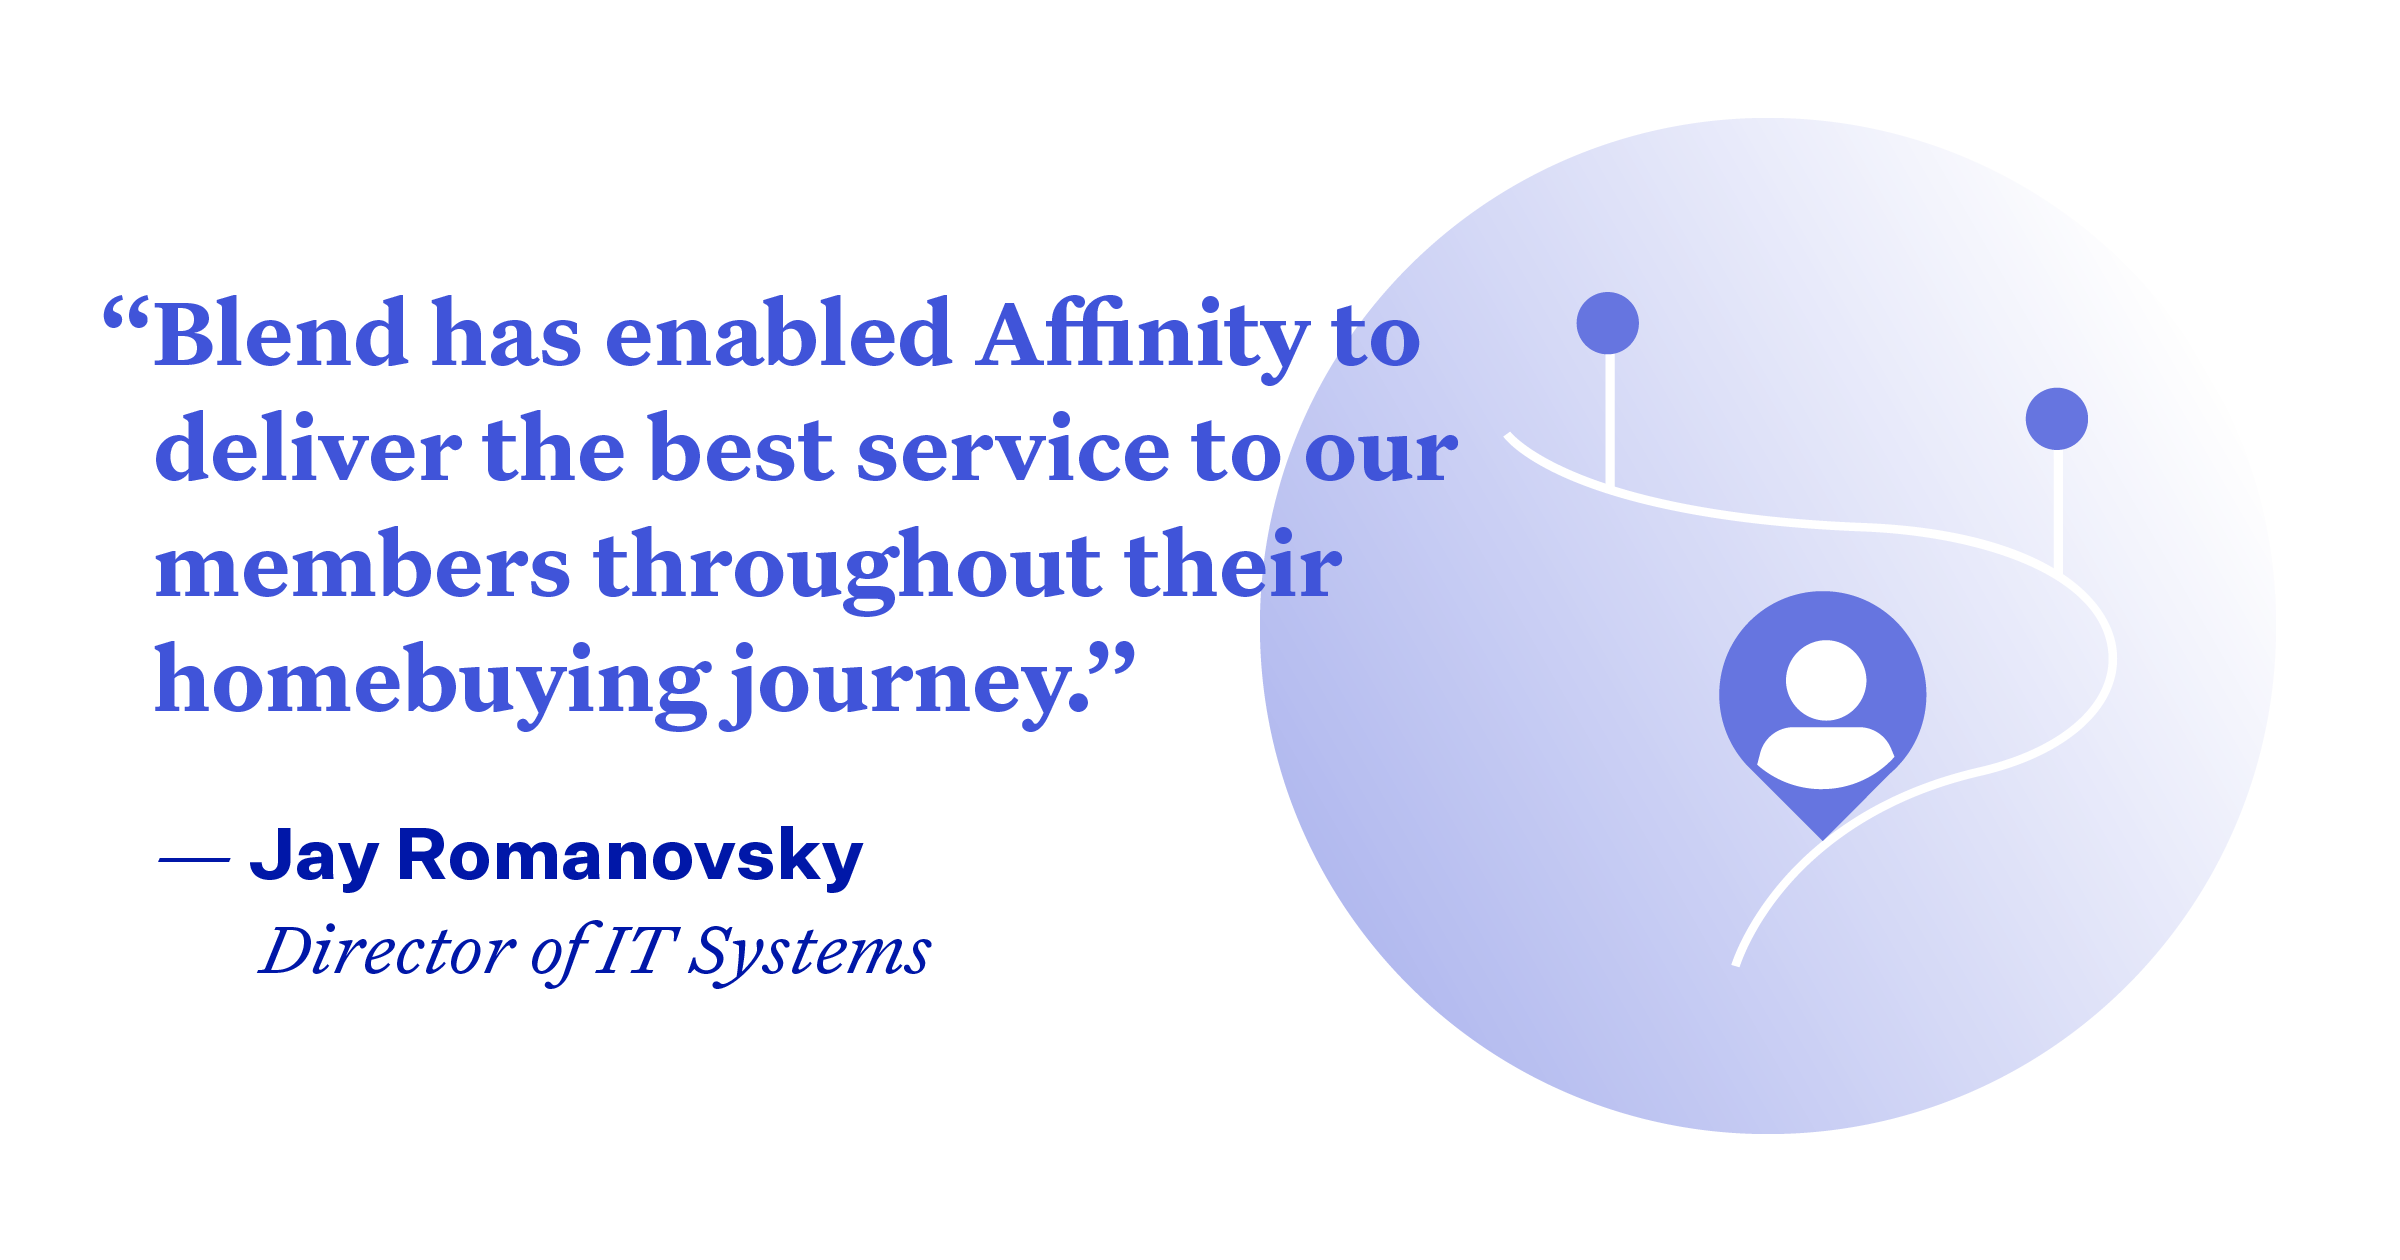 """Pullquote: """"Blend has enabled Affinity to deliver the best service to our members throughout their homebuying journey."""""""